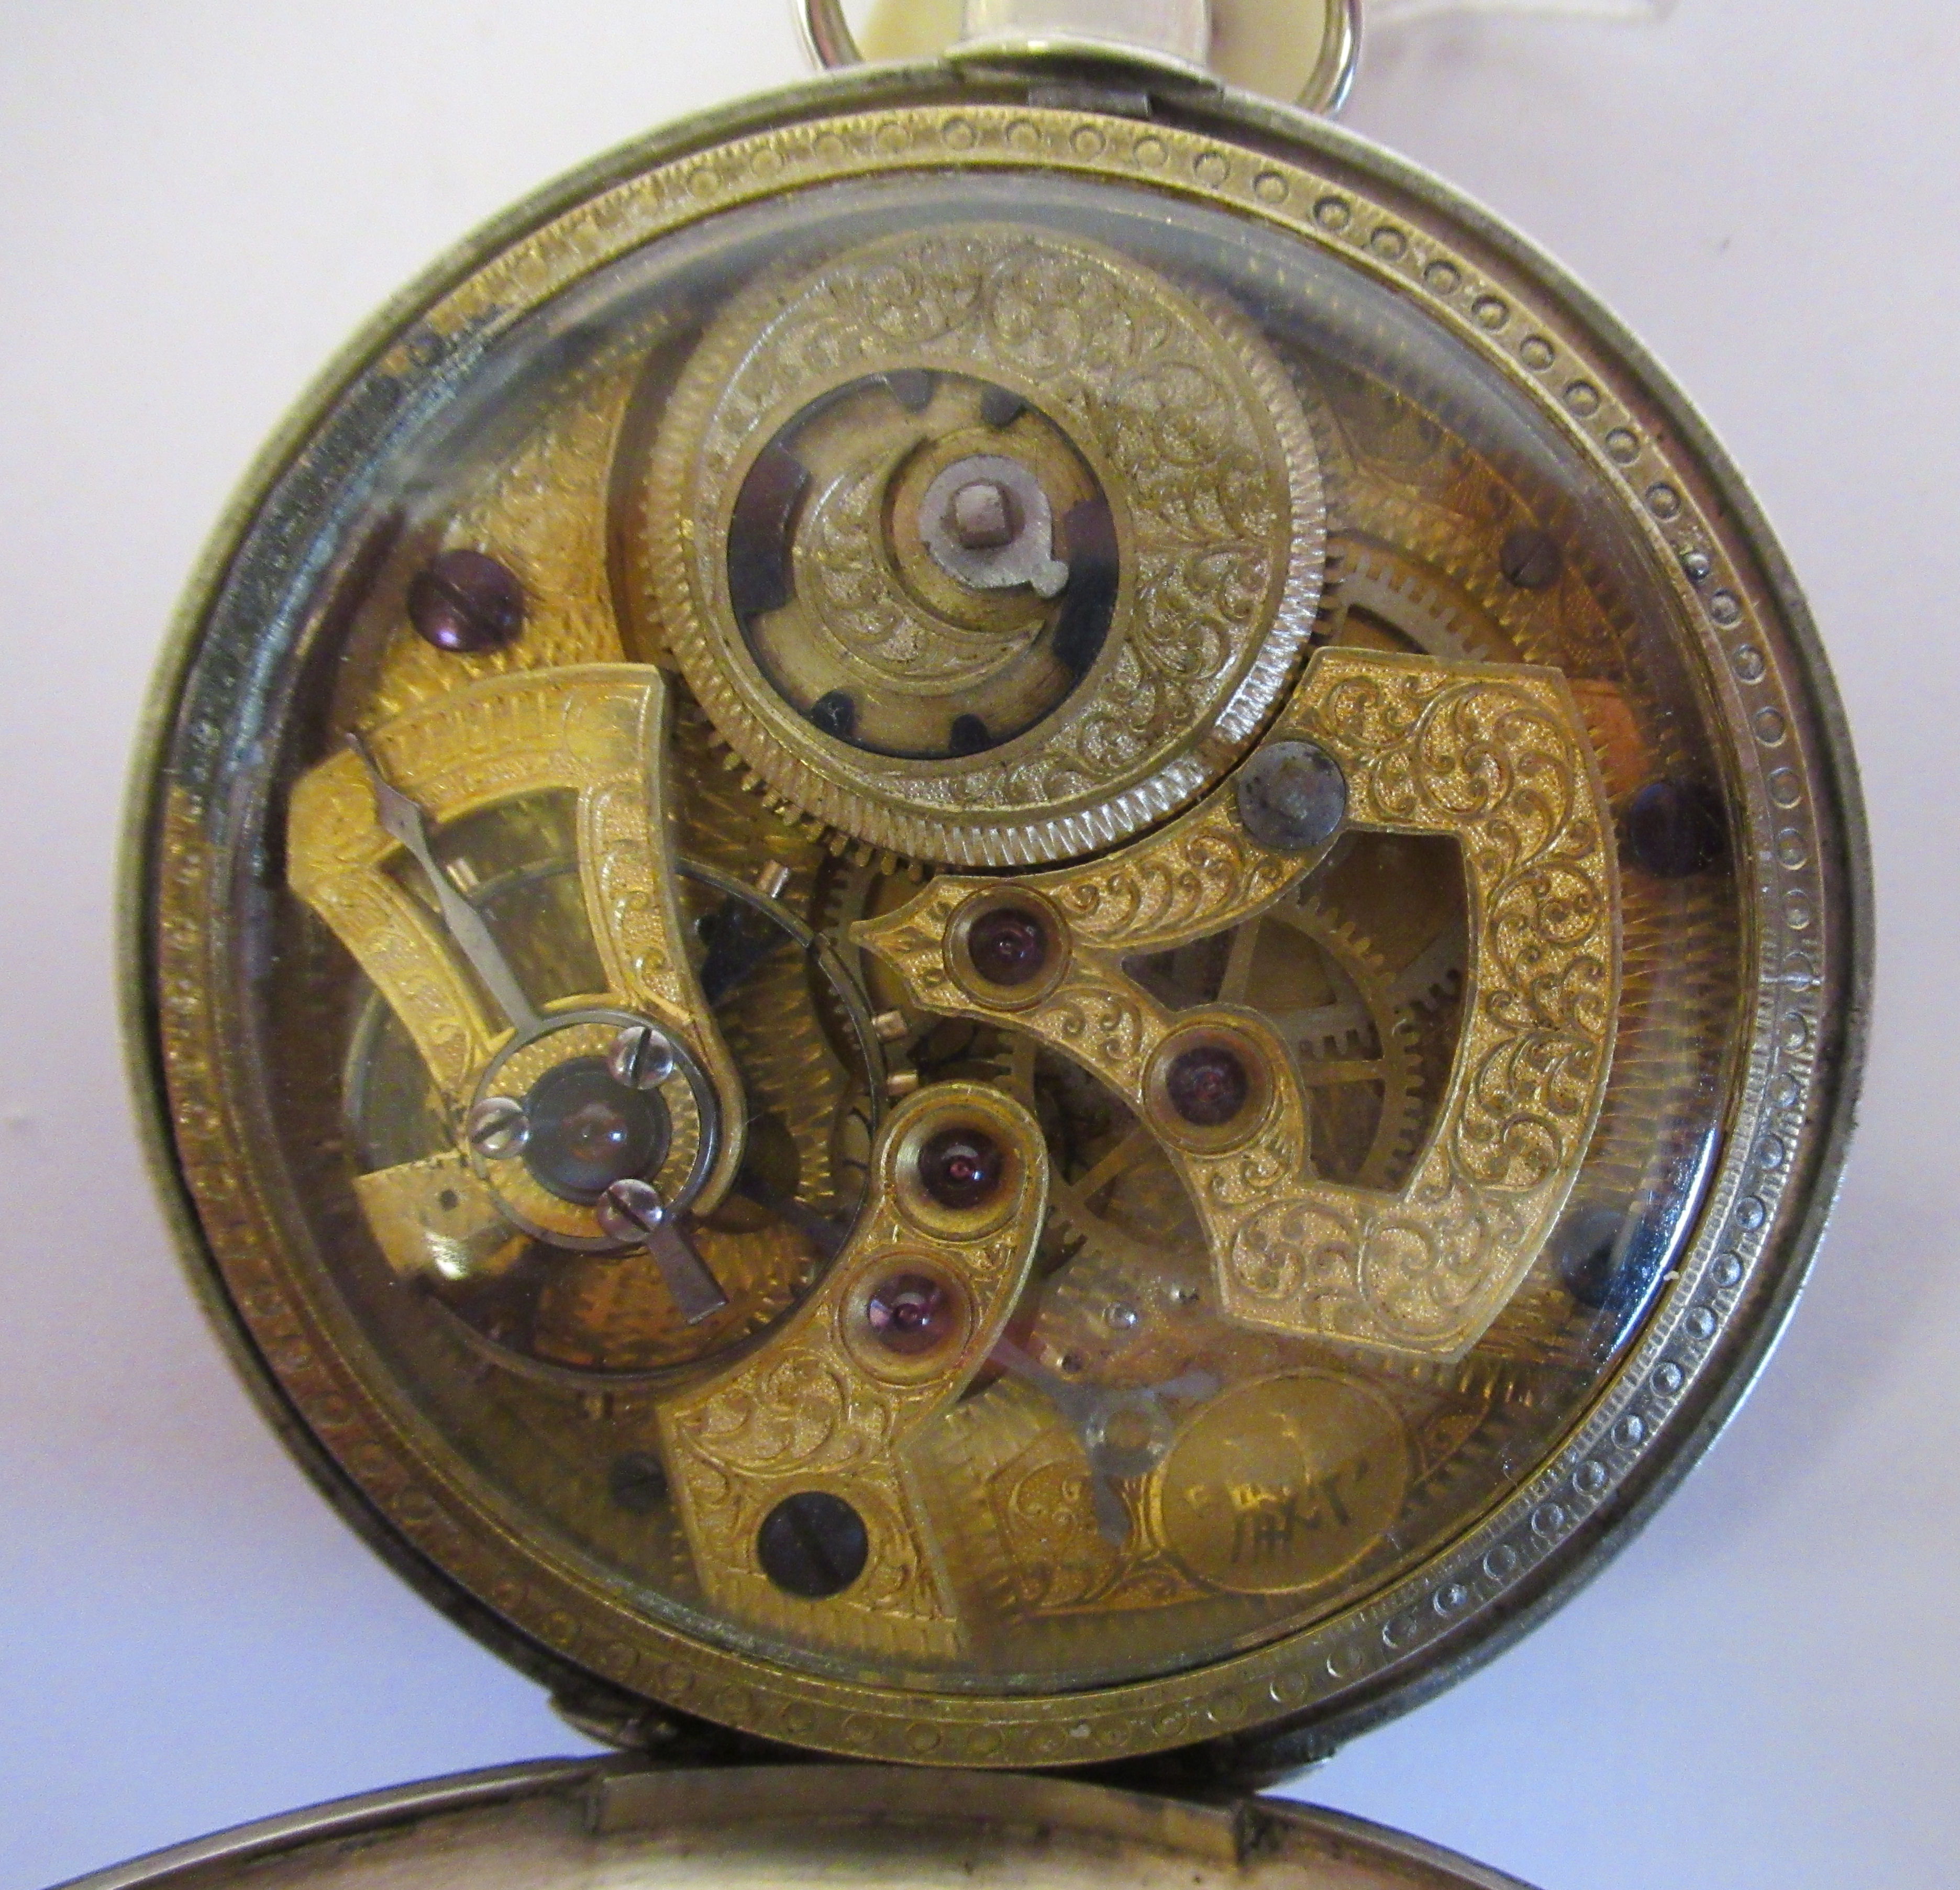 A 19thC silver cased pocket watch, the jewelled movement with sweeping seconds, protected by a - Image 3 of 4